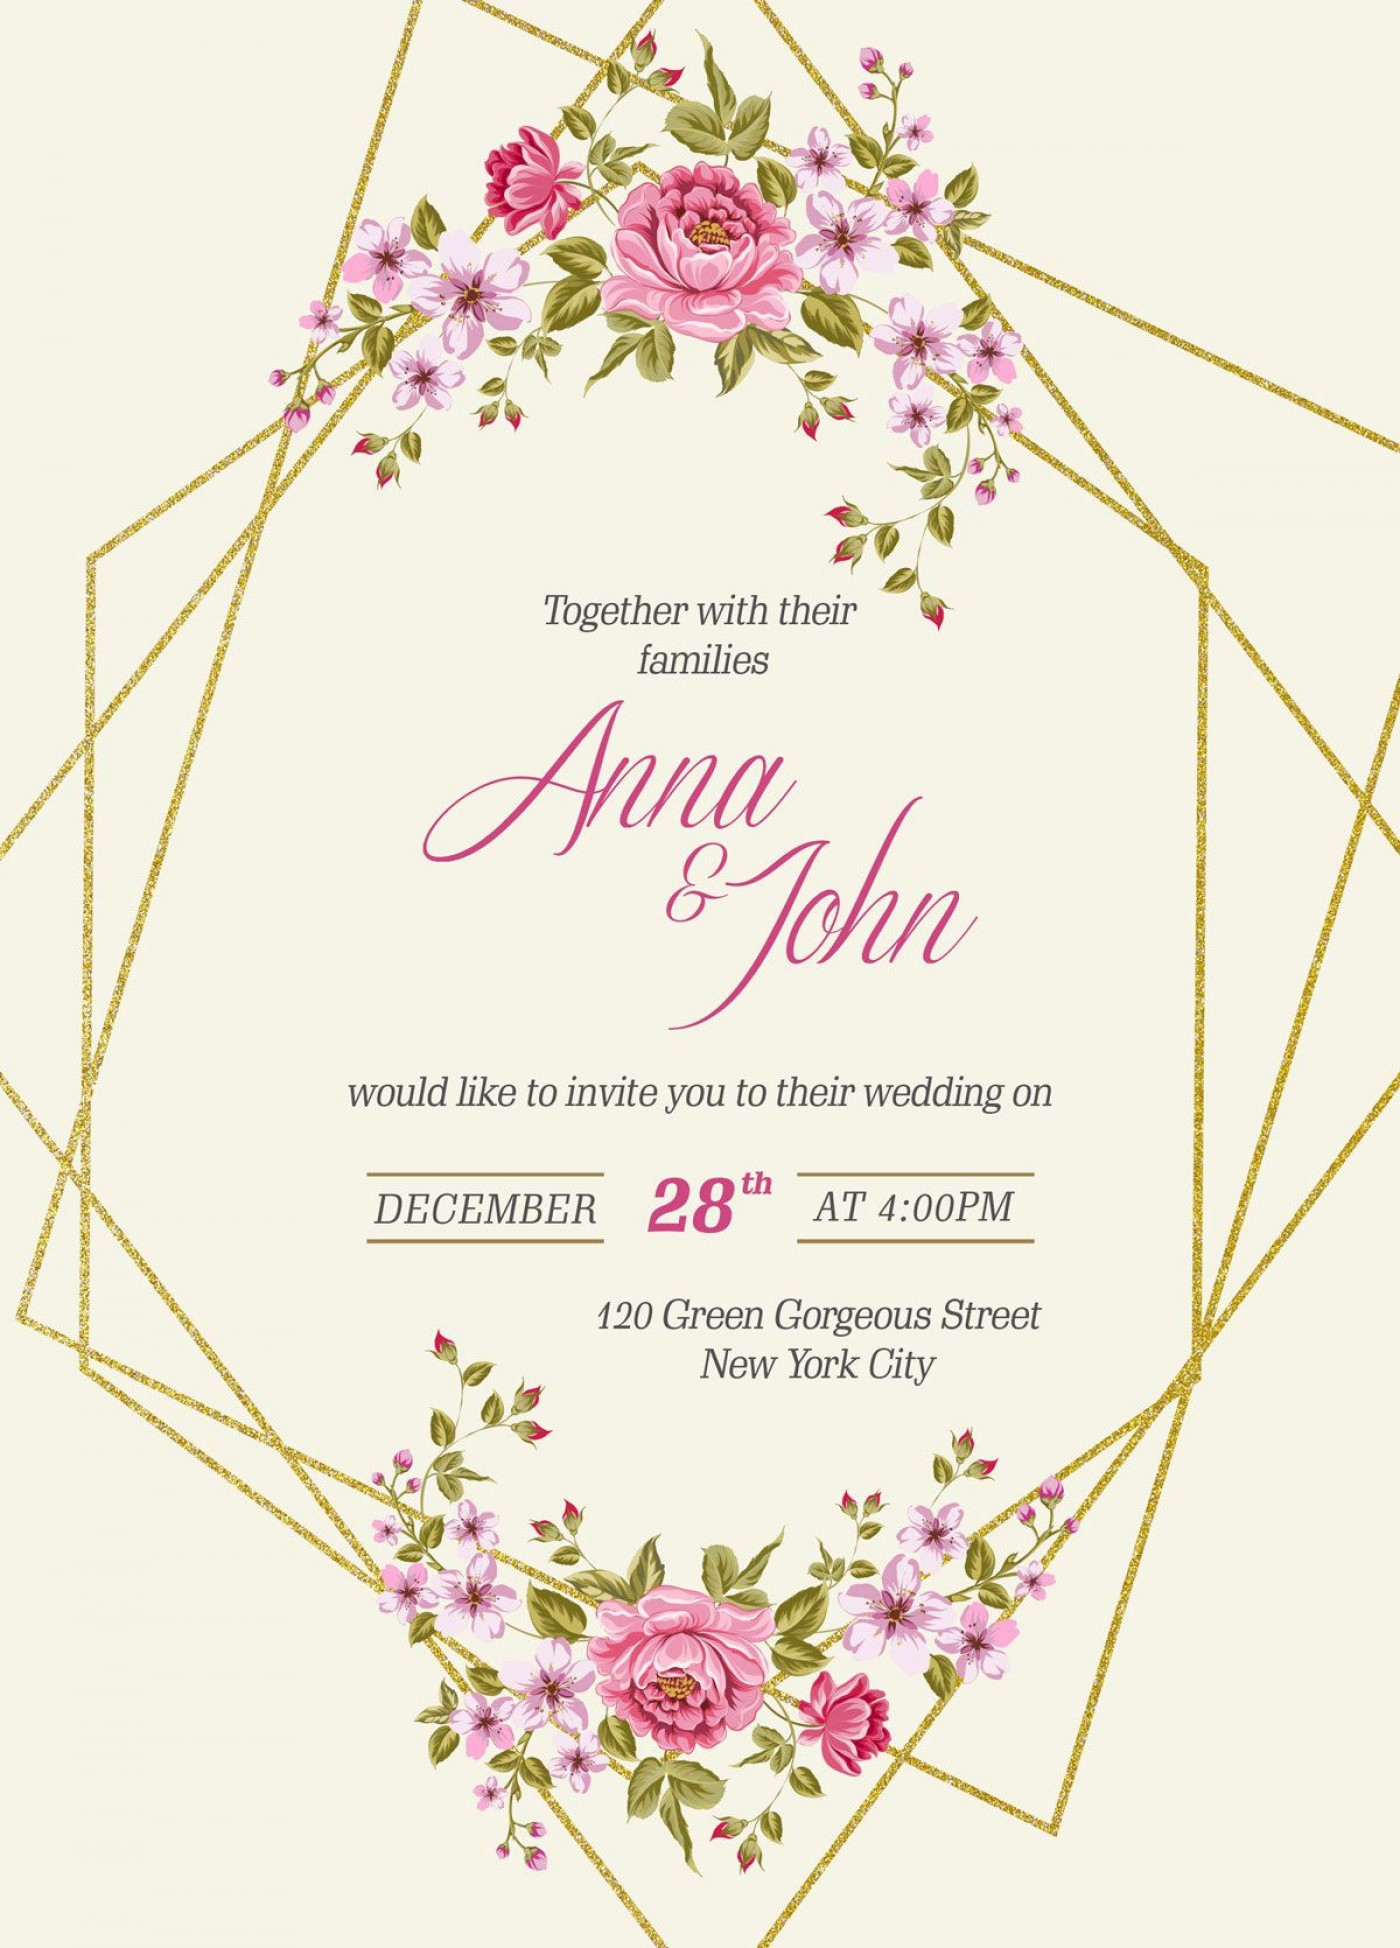 007 Outstanding Free Download Invitation Card Template Psd Image  Indian Wedding1400